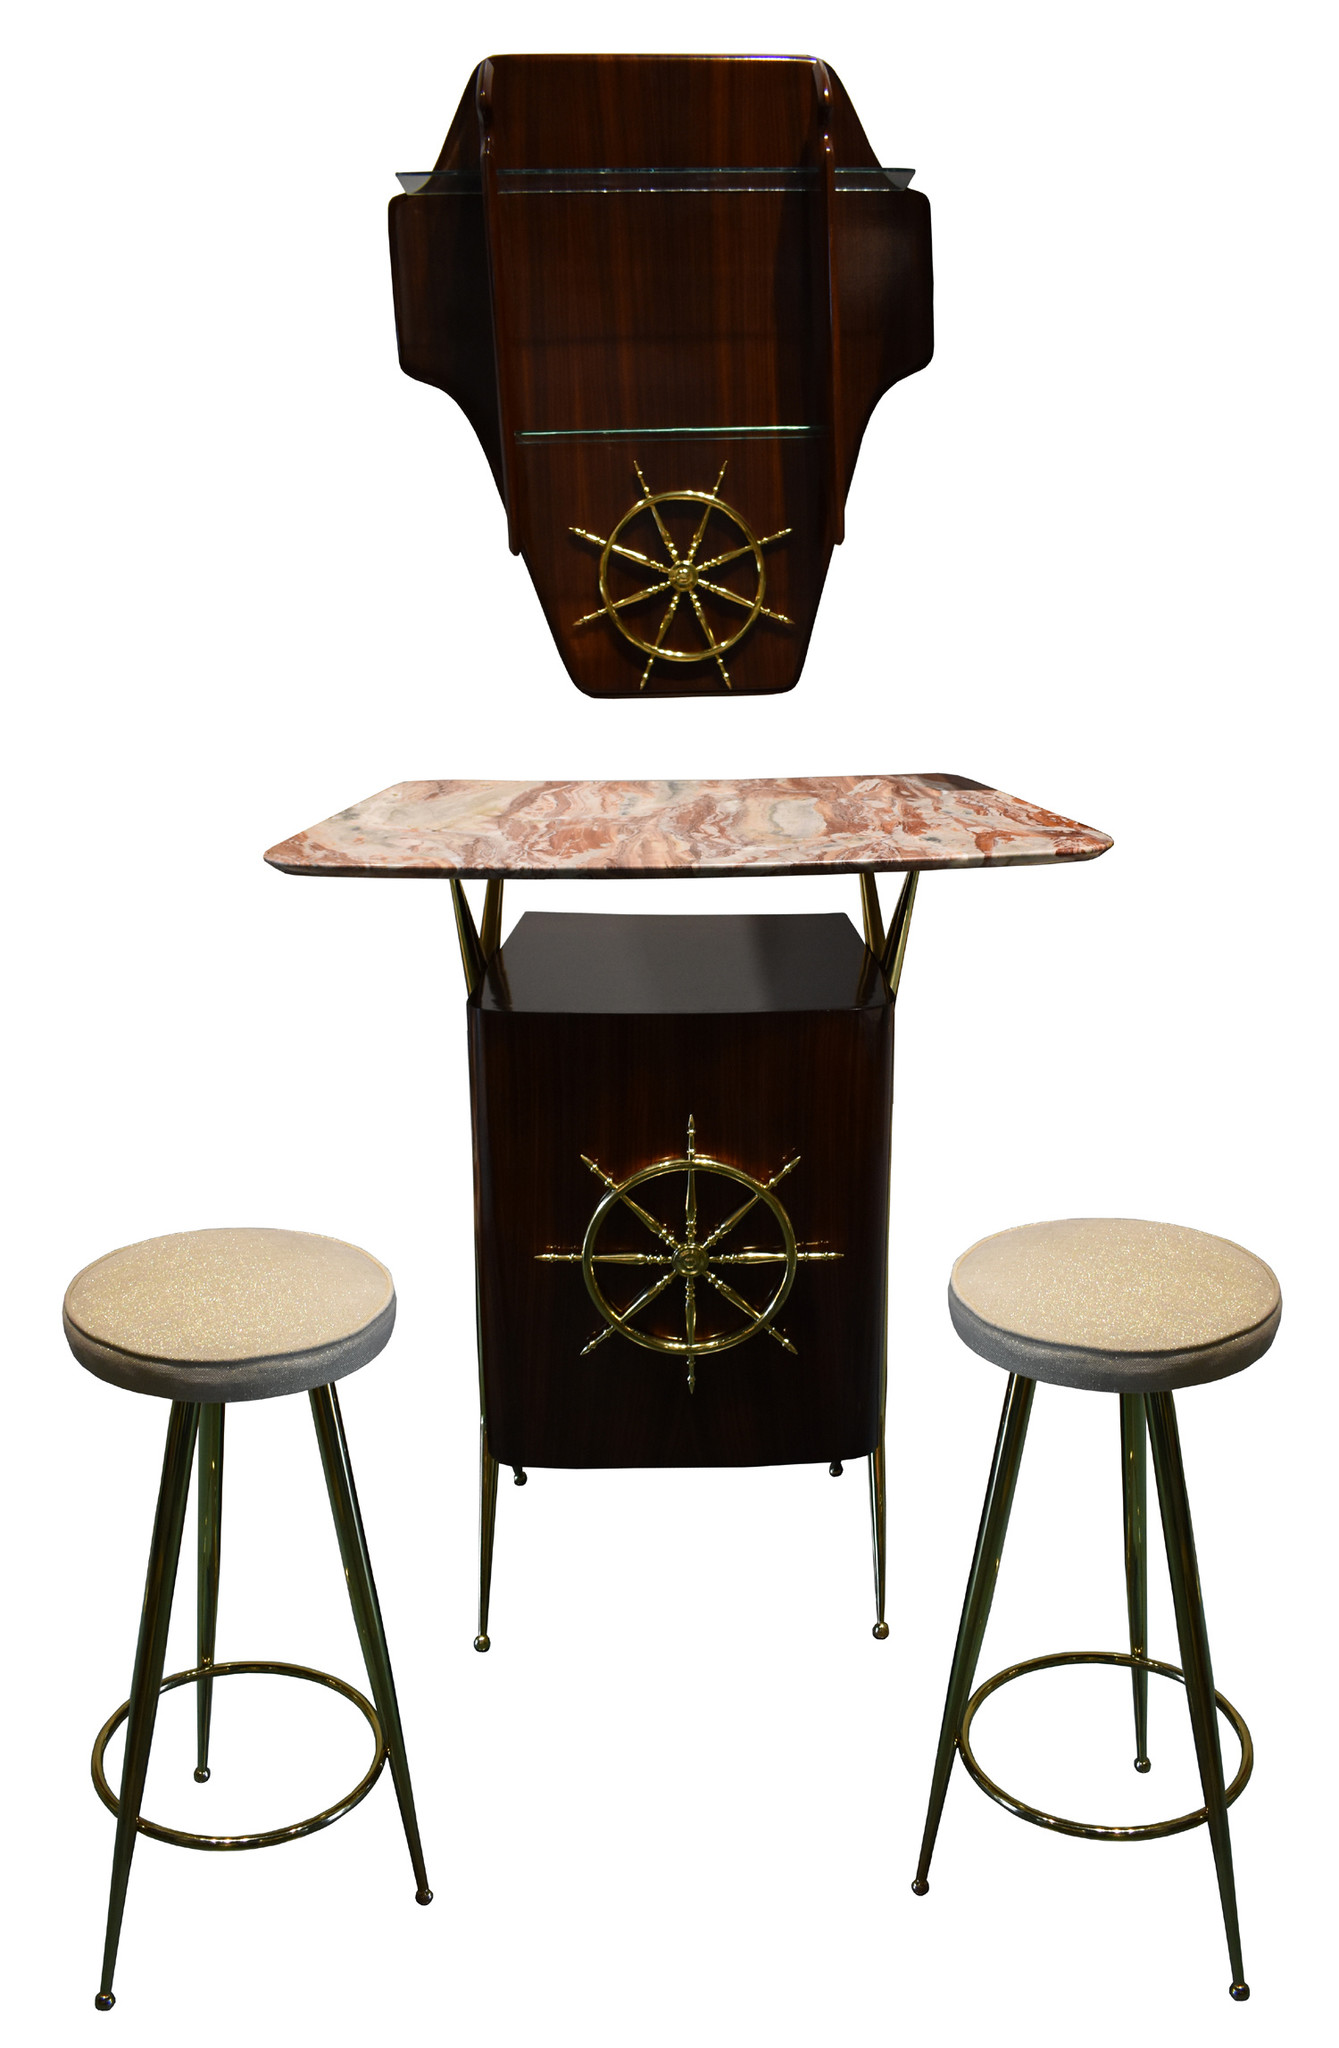 Vintage Italian Rosewood & Brass Bar Shelf & Cabinet with Stools